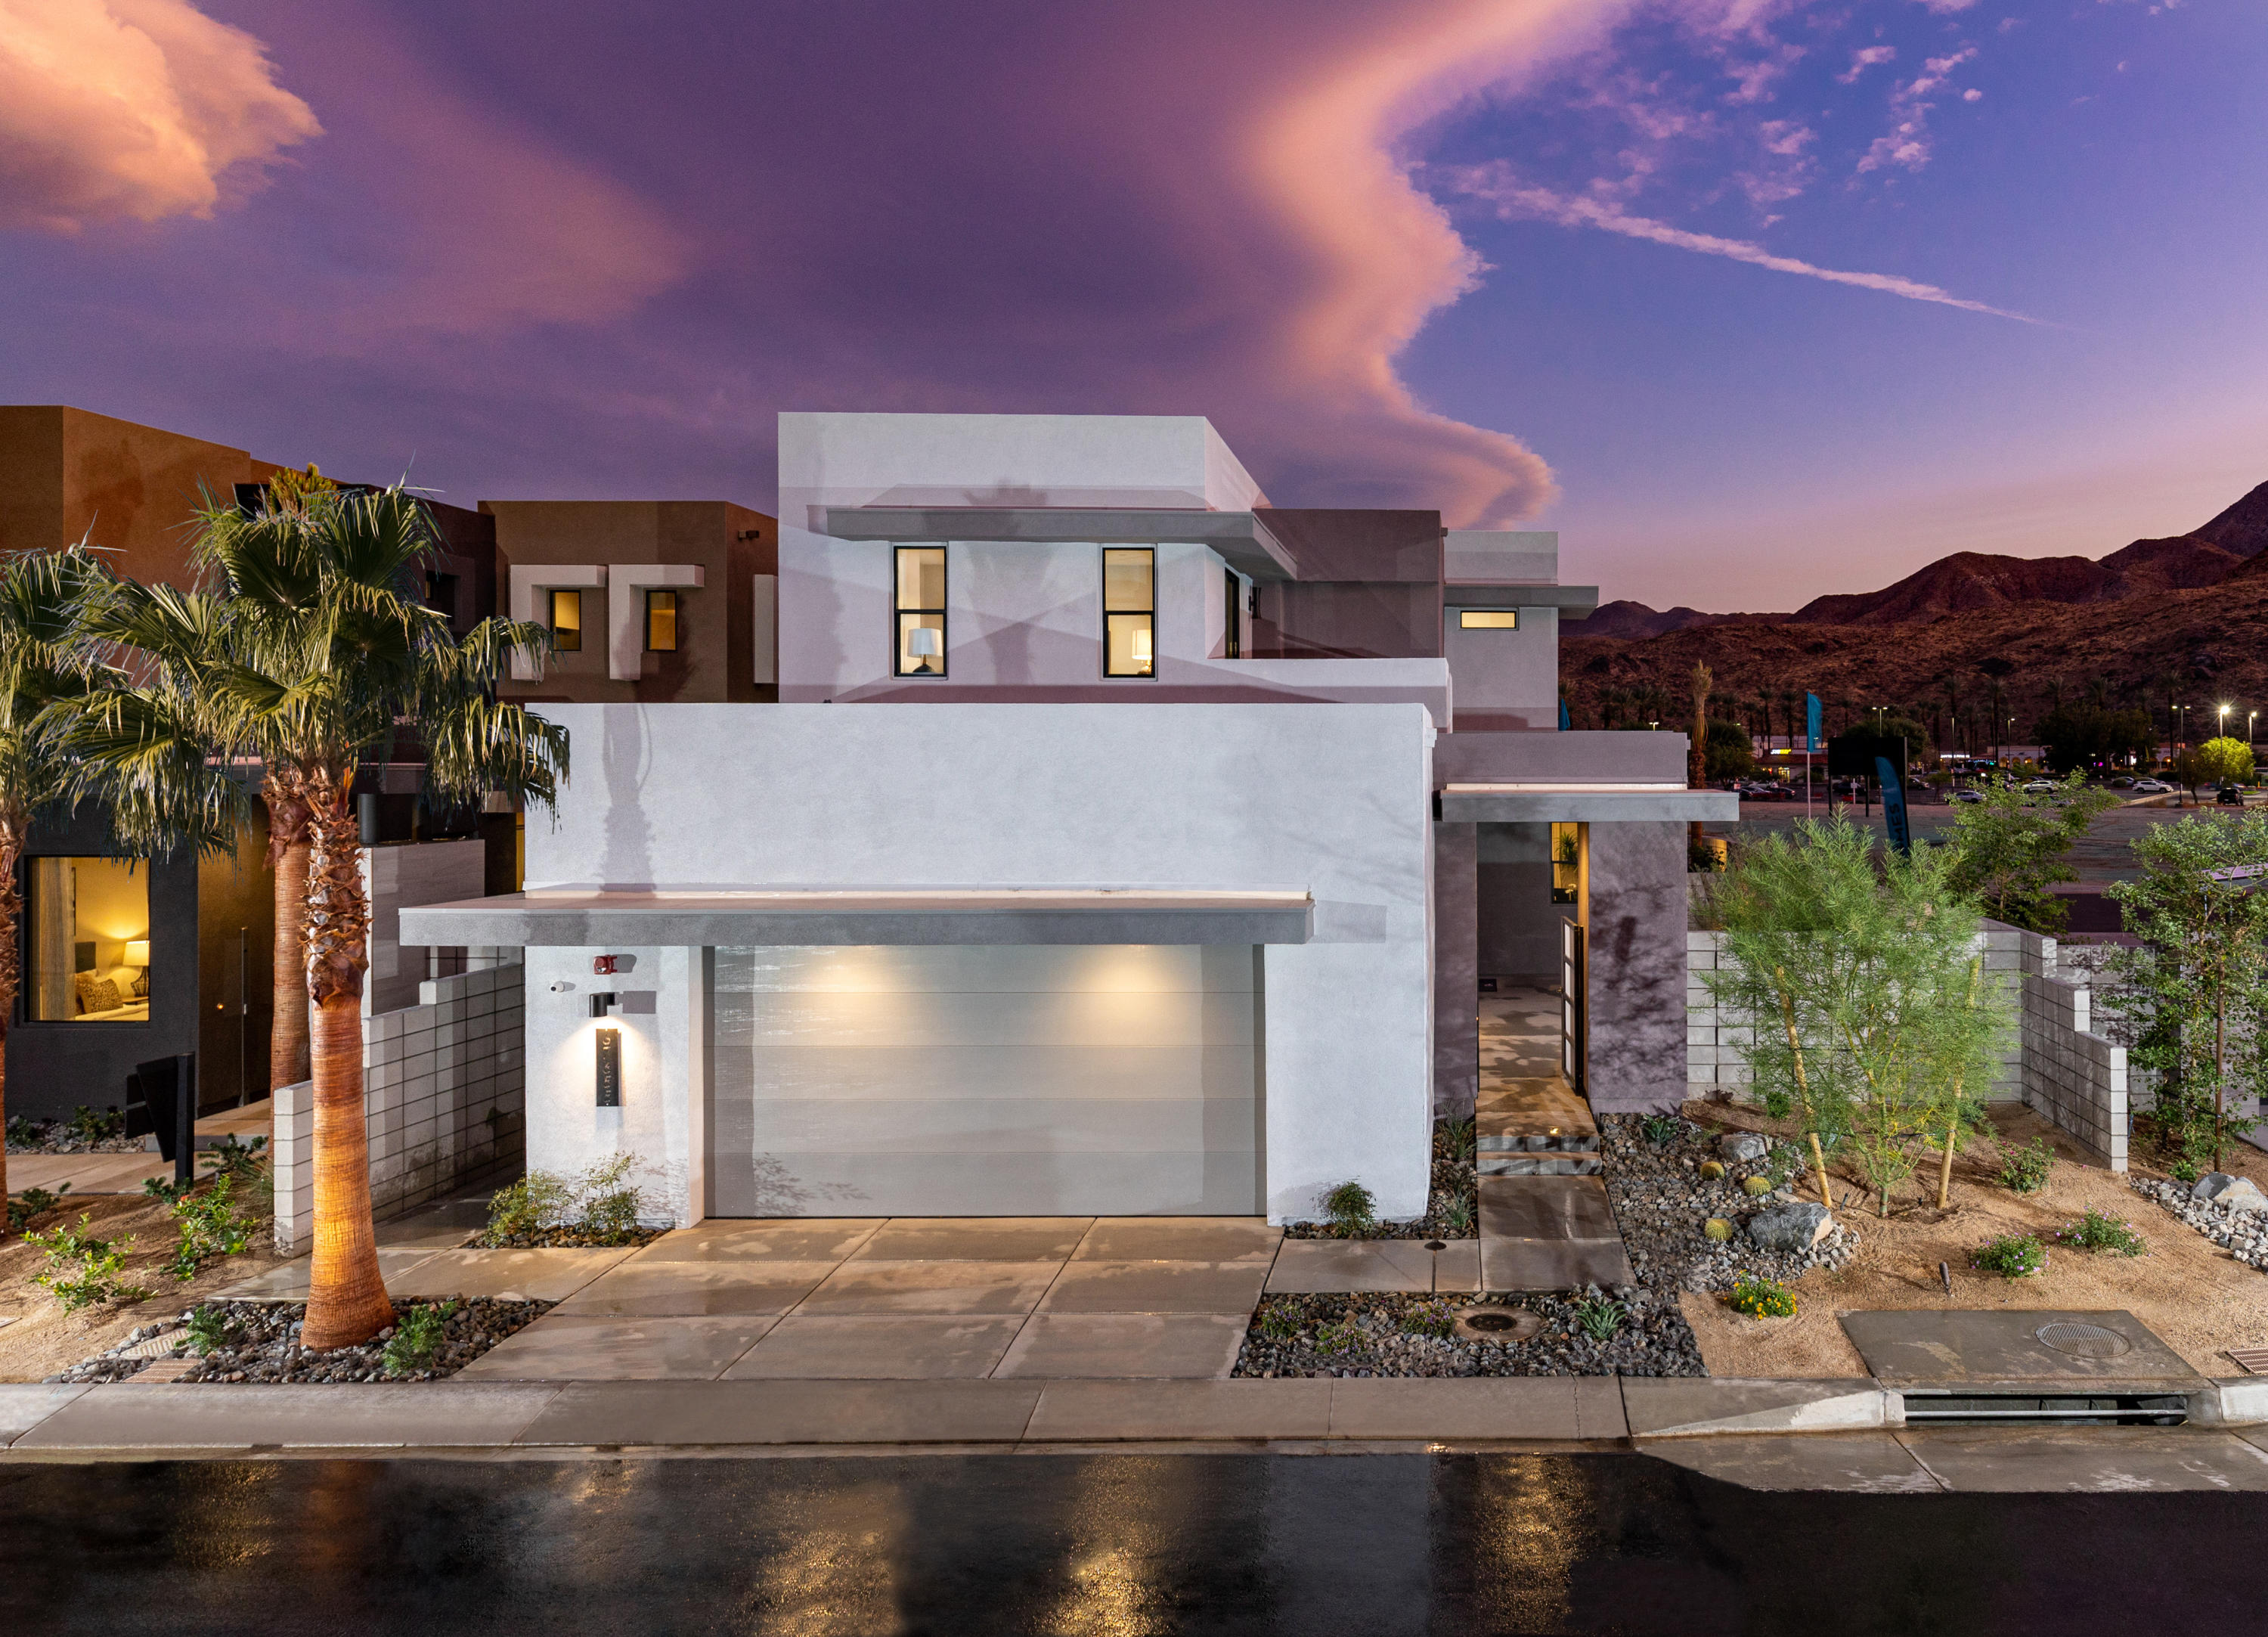 Lot 37, tribeca floor plan. Welcome to the District East, a small new home community of just 43 homes on the edge of Palm Springs and Cathedral City. This home features 3 bedrooms, 3 baths and 4 outdoor living areas to enjoy the beautiful mountain views!!! 2 large upper balconies, a large front courtyard and a private back patio with spa/spool included! Open concept 21 Century living, 8' low-e glass triple sliding glass doors that lead out to a beautiful patio. STANDARD - 24x24 designer porcelain tile flooring in all living areas and designer carpet in the bedrooms. Pre-wired for speakers in great room, outdoor living, and master bedroom. Social Kitchen with quartz countertops and backsplash. All Kitchen appliances included. The list goes on and on, these homes really are a must see. Call to schedule an appointment ! Reserve your new home today!! Photos are of model home** colors vary.